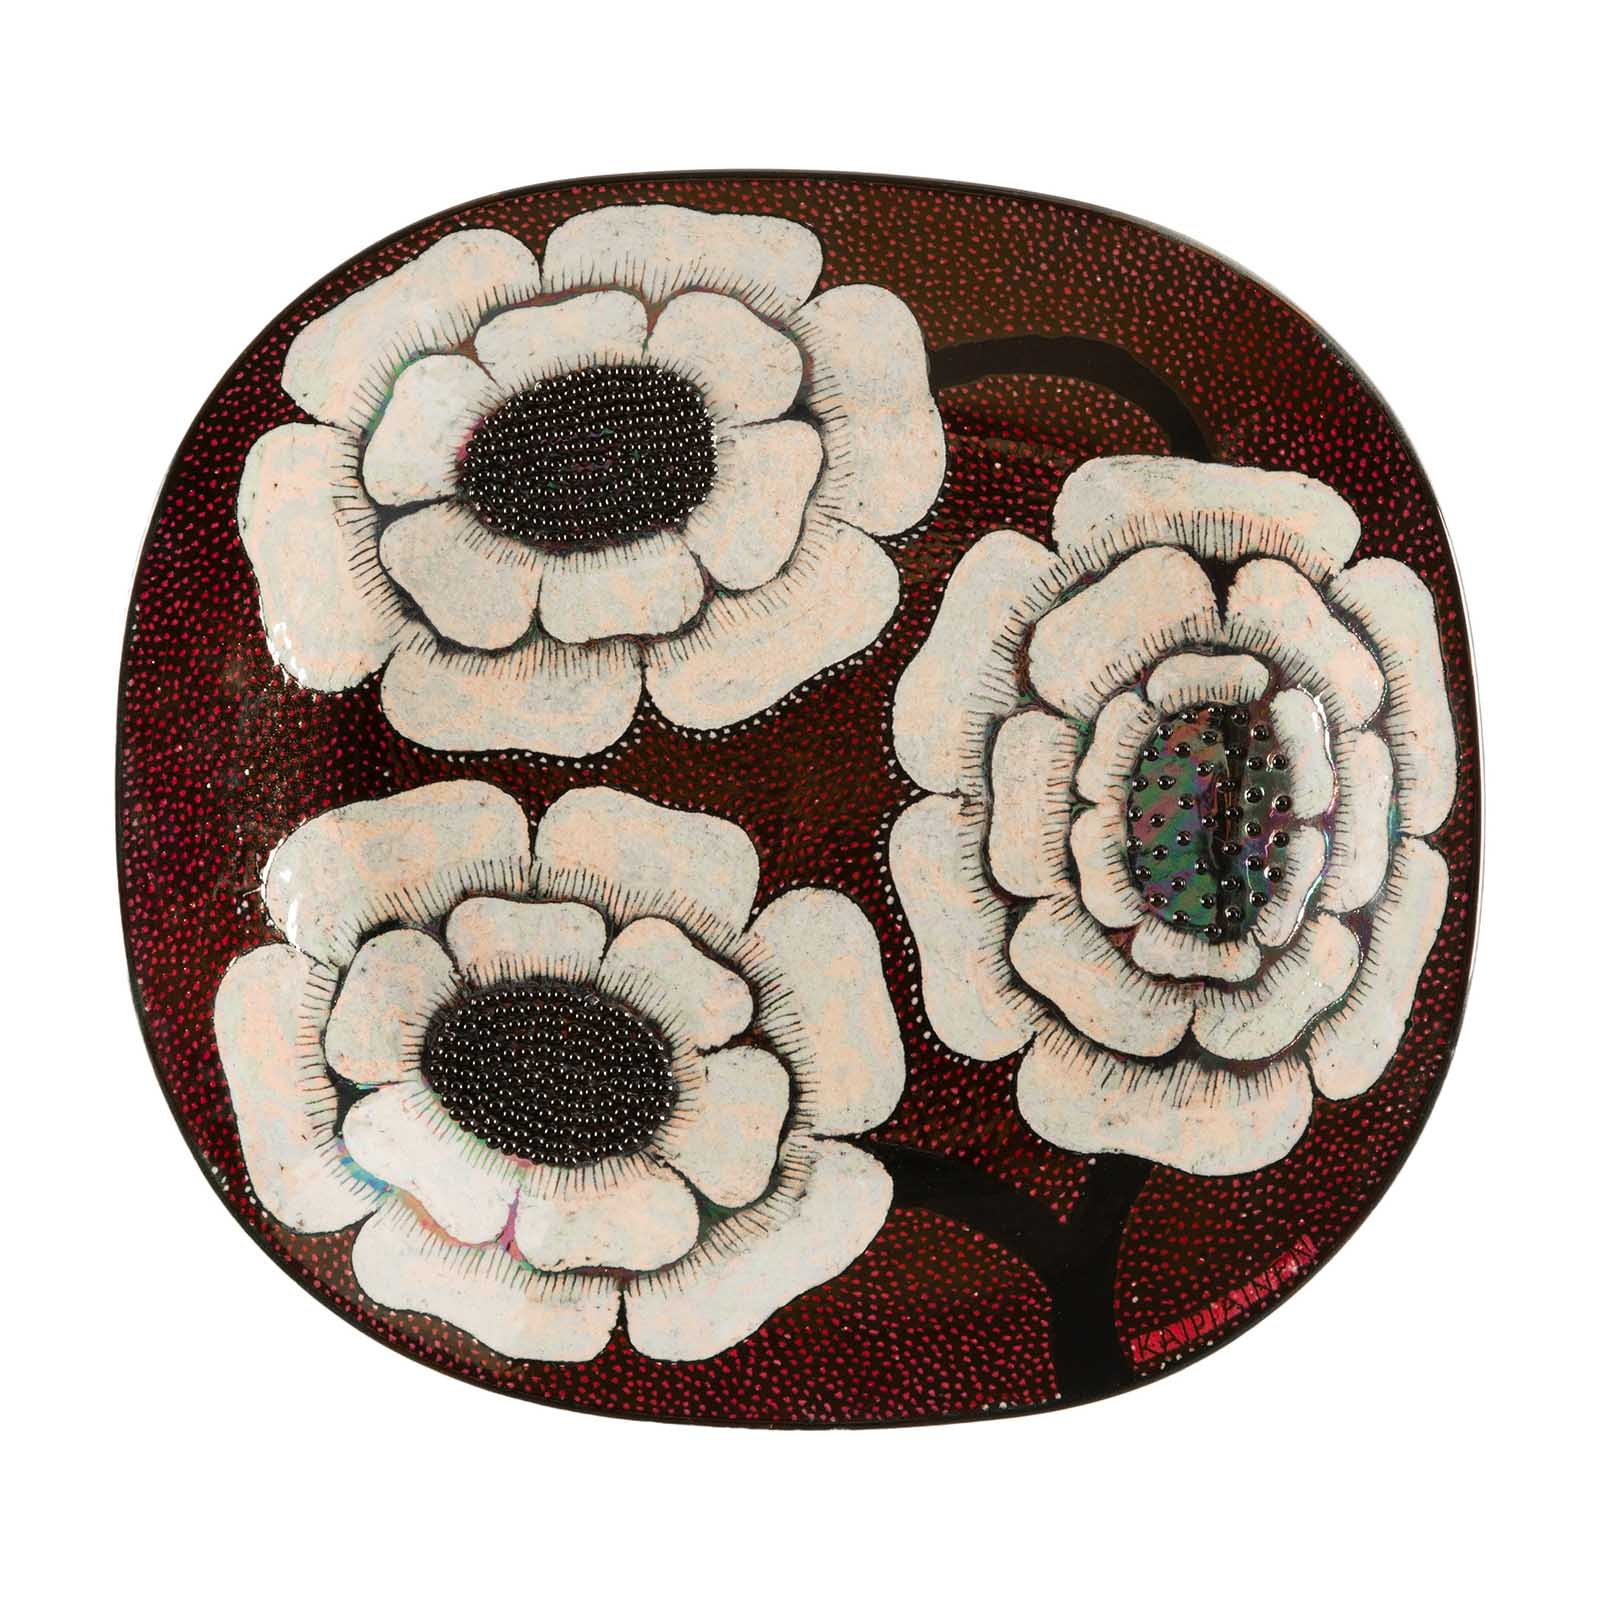 A wall mounted dish, decorated with large flowers